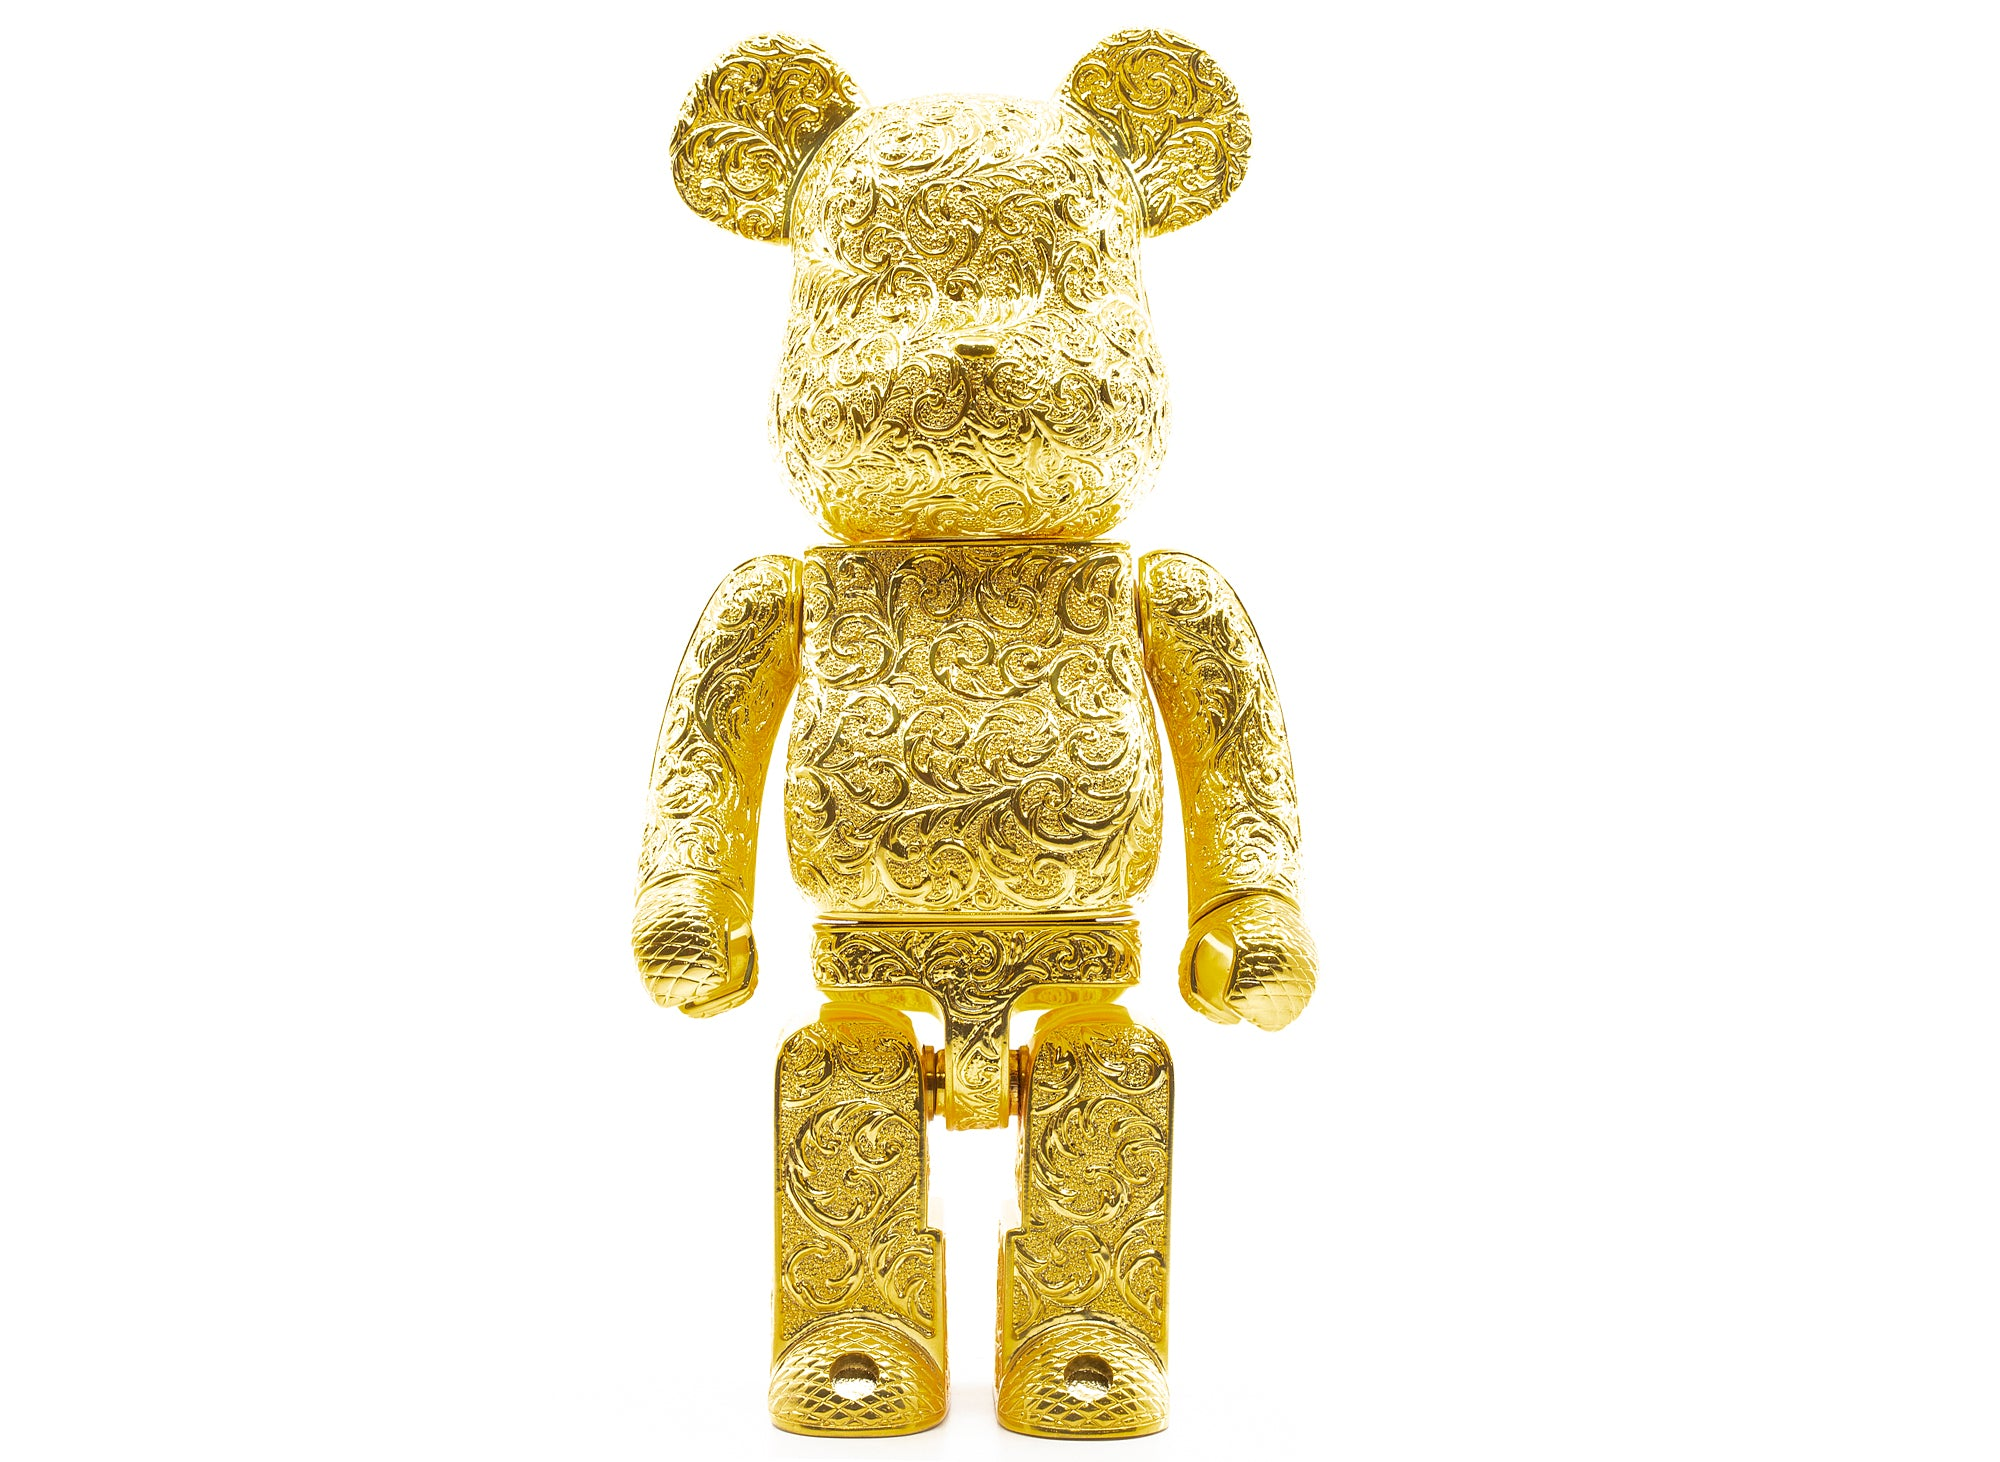 Medicom Special Edition Arabesque Golden 400% BE@RBRICK ROYAL SELANGOR xld